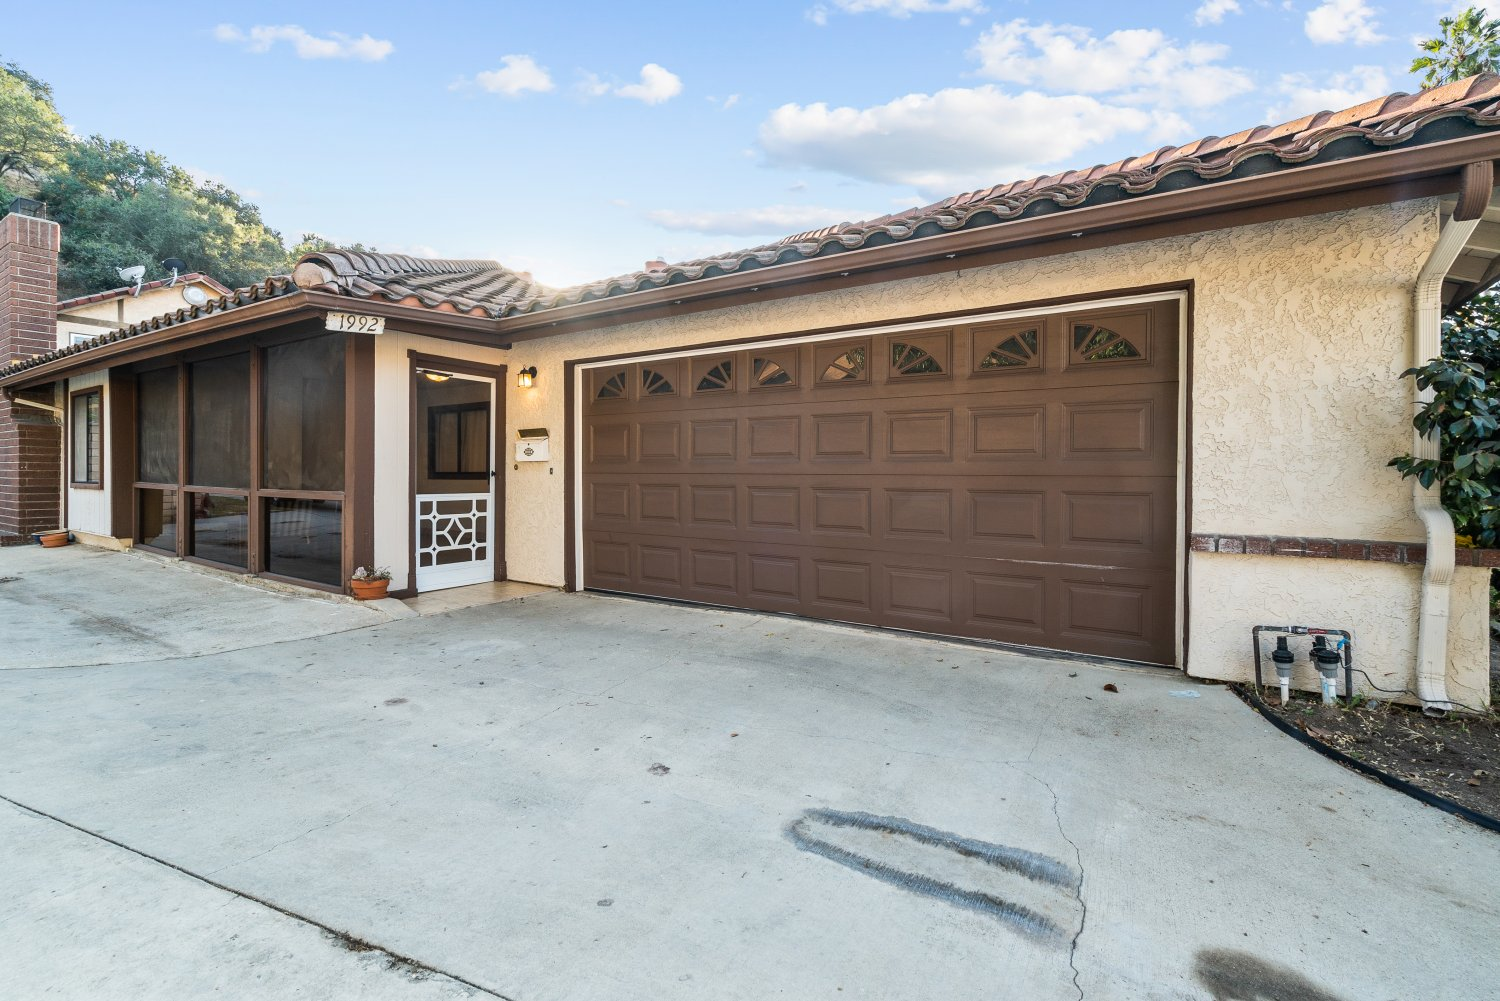 1992 E. Glenoaks Blvd, Glendale, CA 91206 | Photo 2